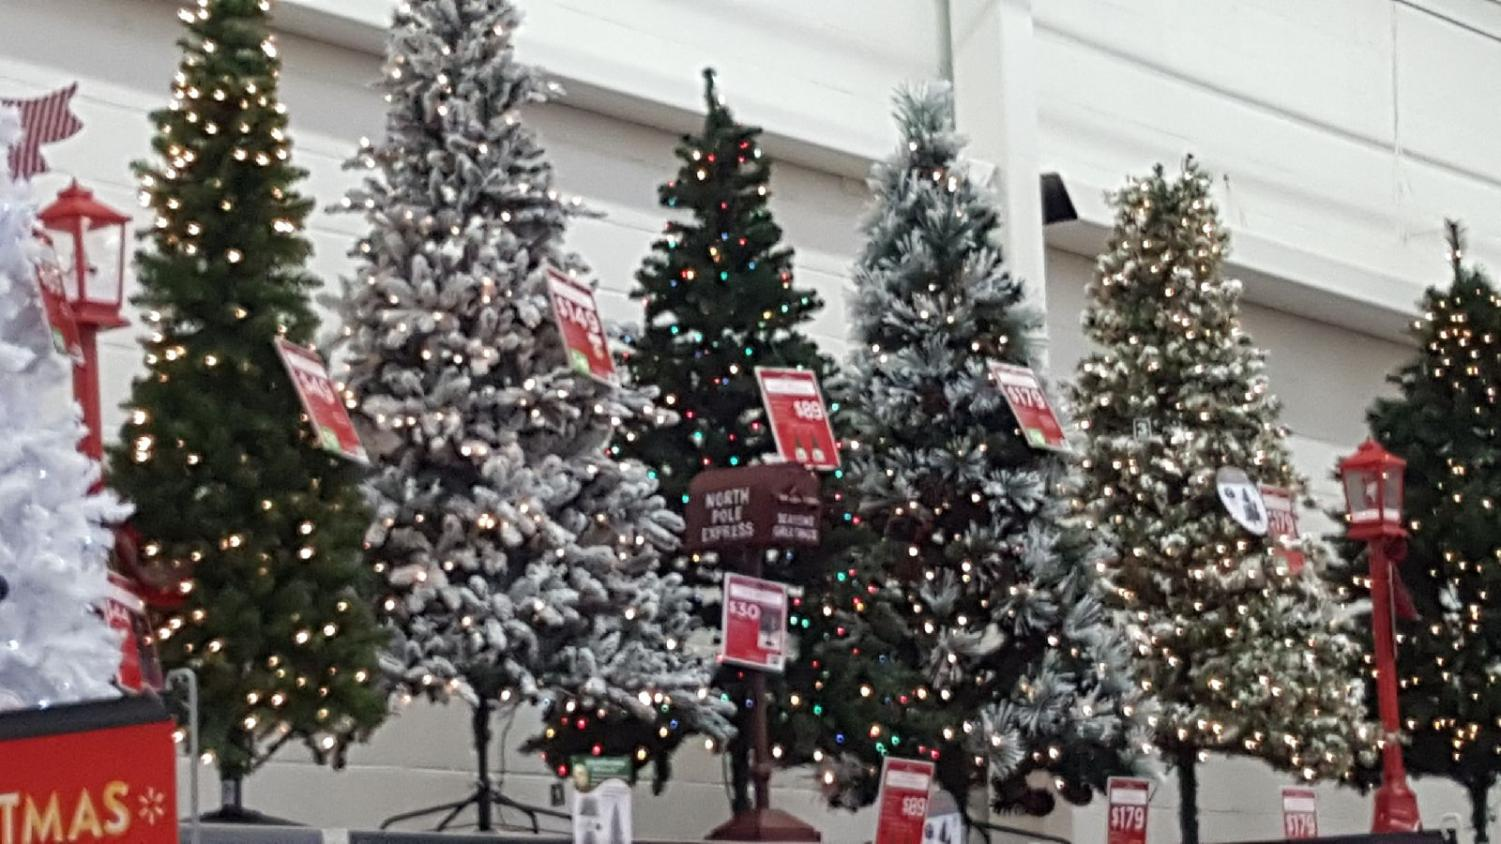 Christmas trees on display and for sale weeks before Thanksgiving.